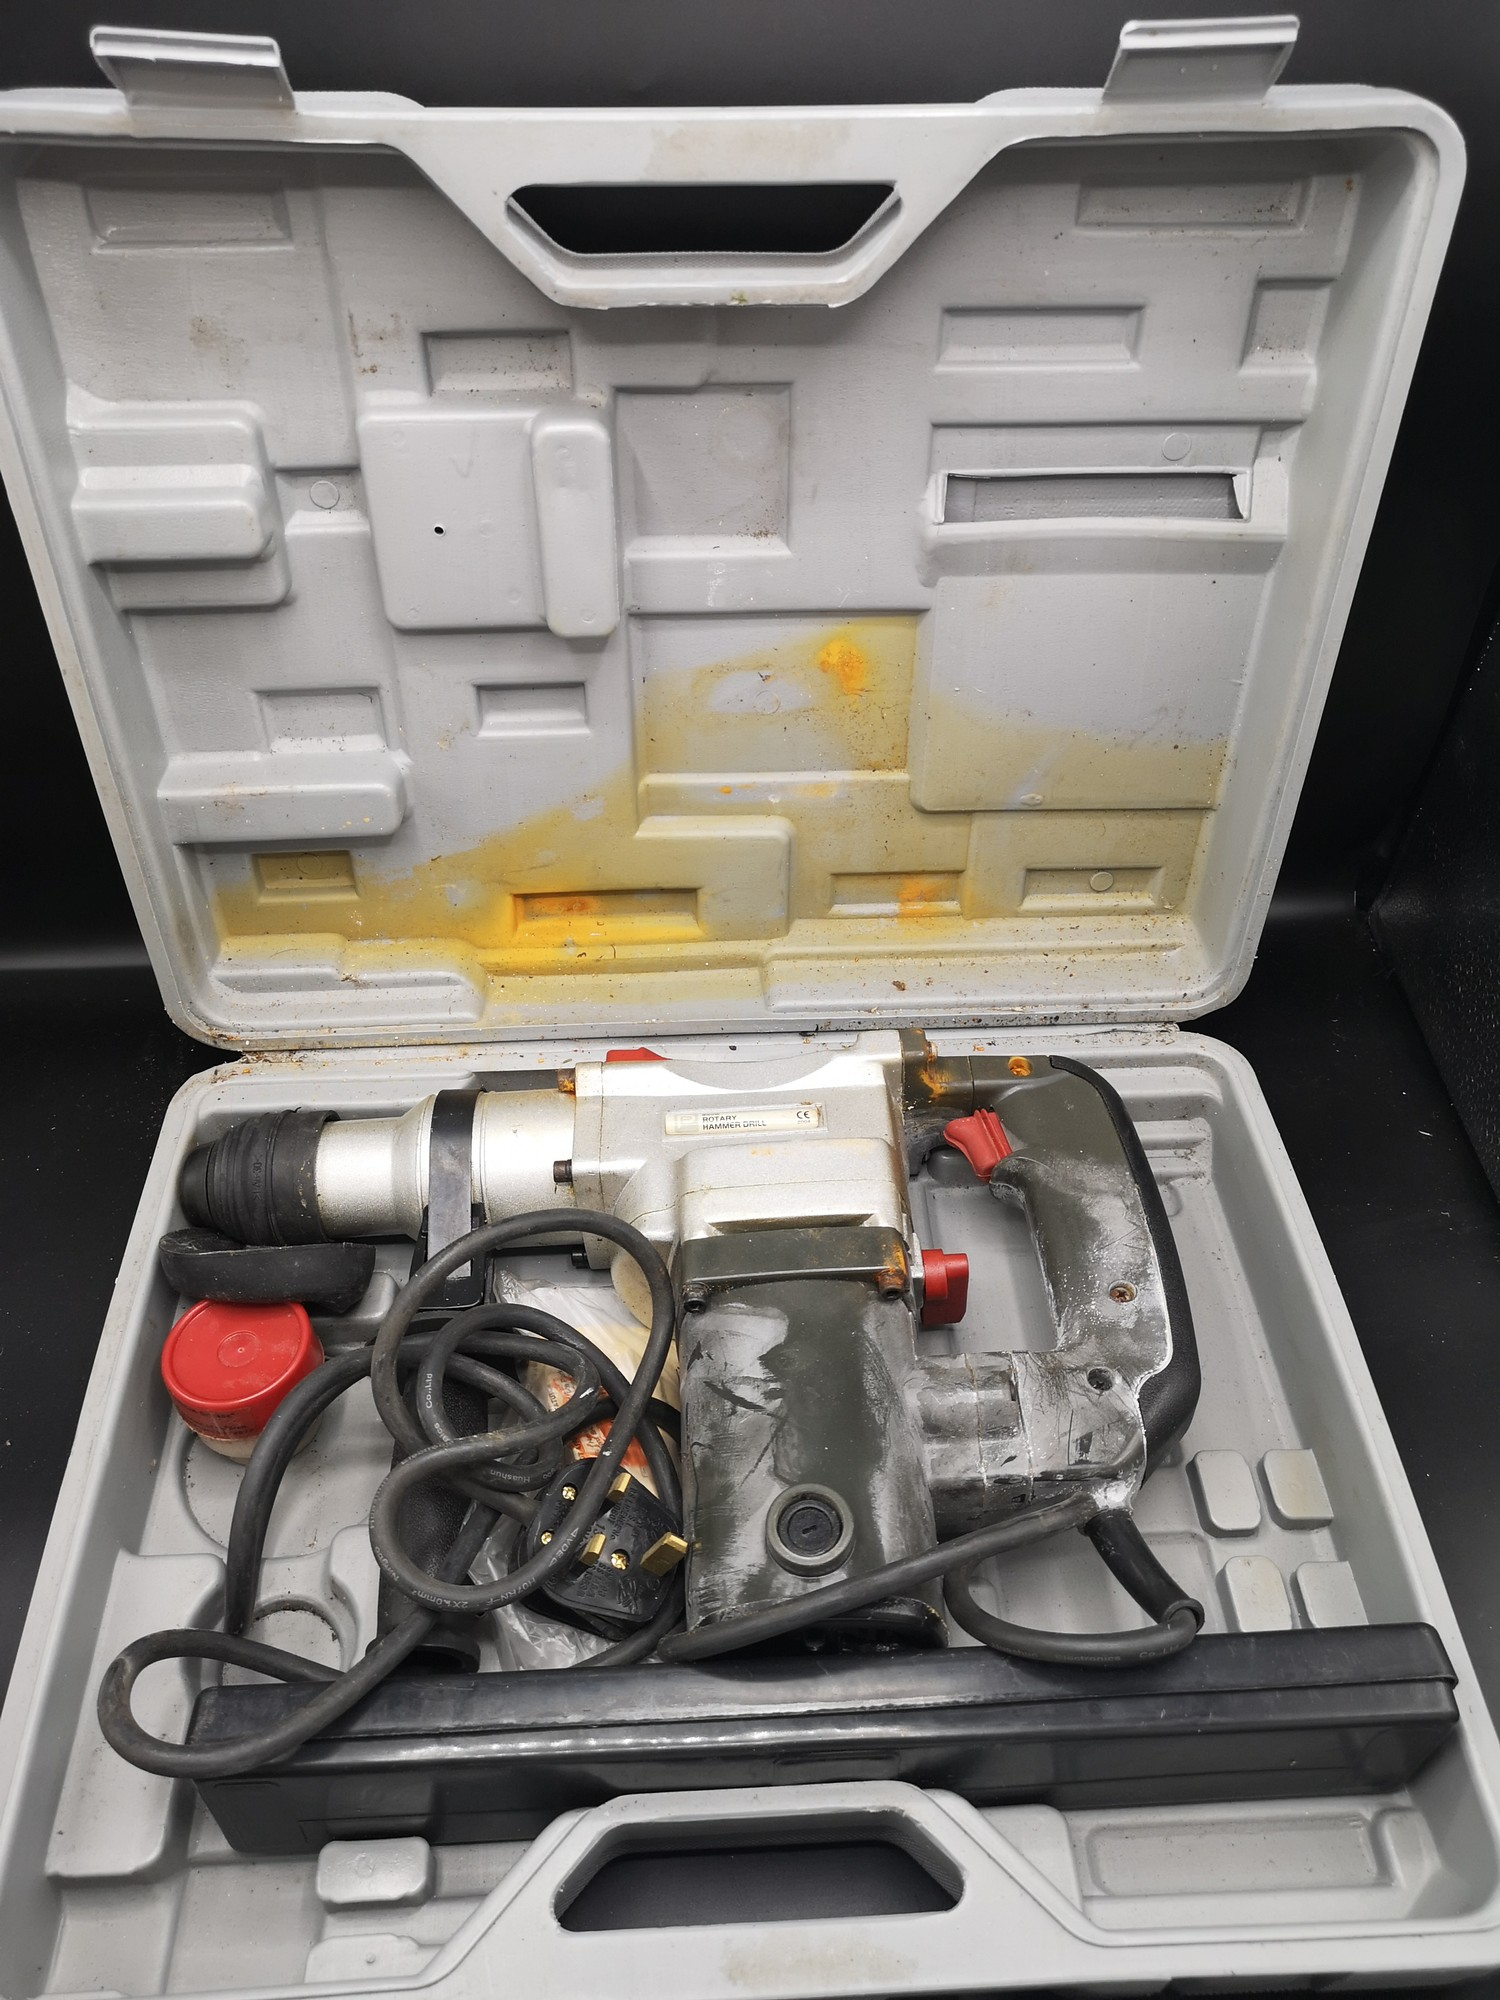 Pro rotary hammer drill in fitted case.